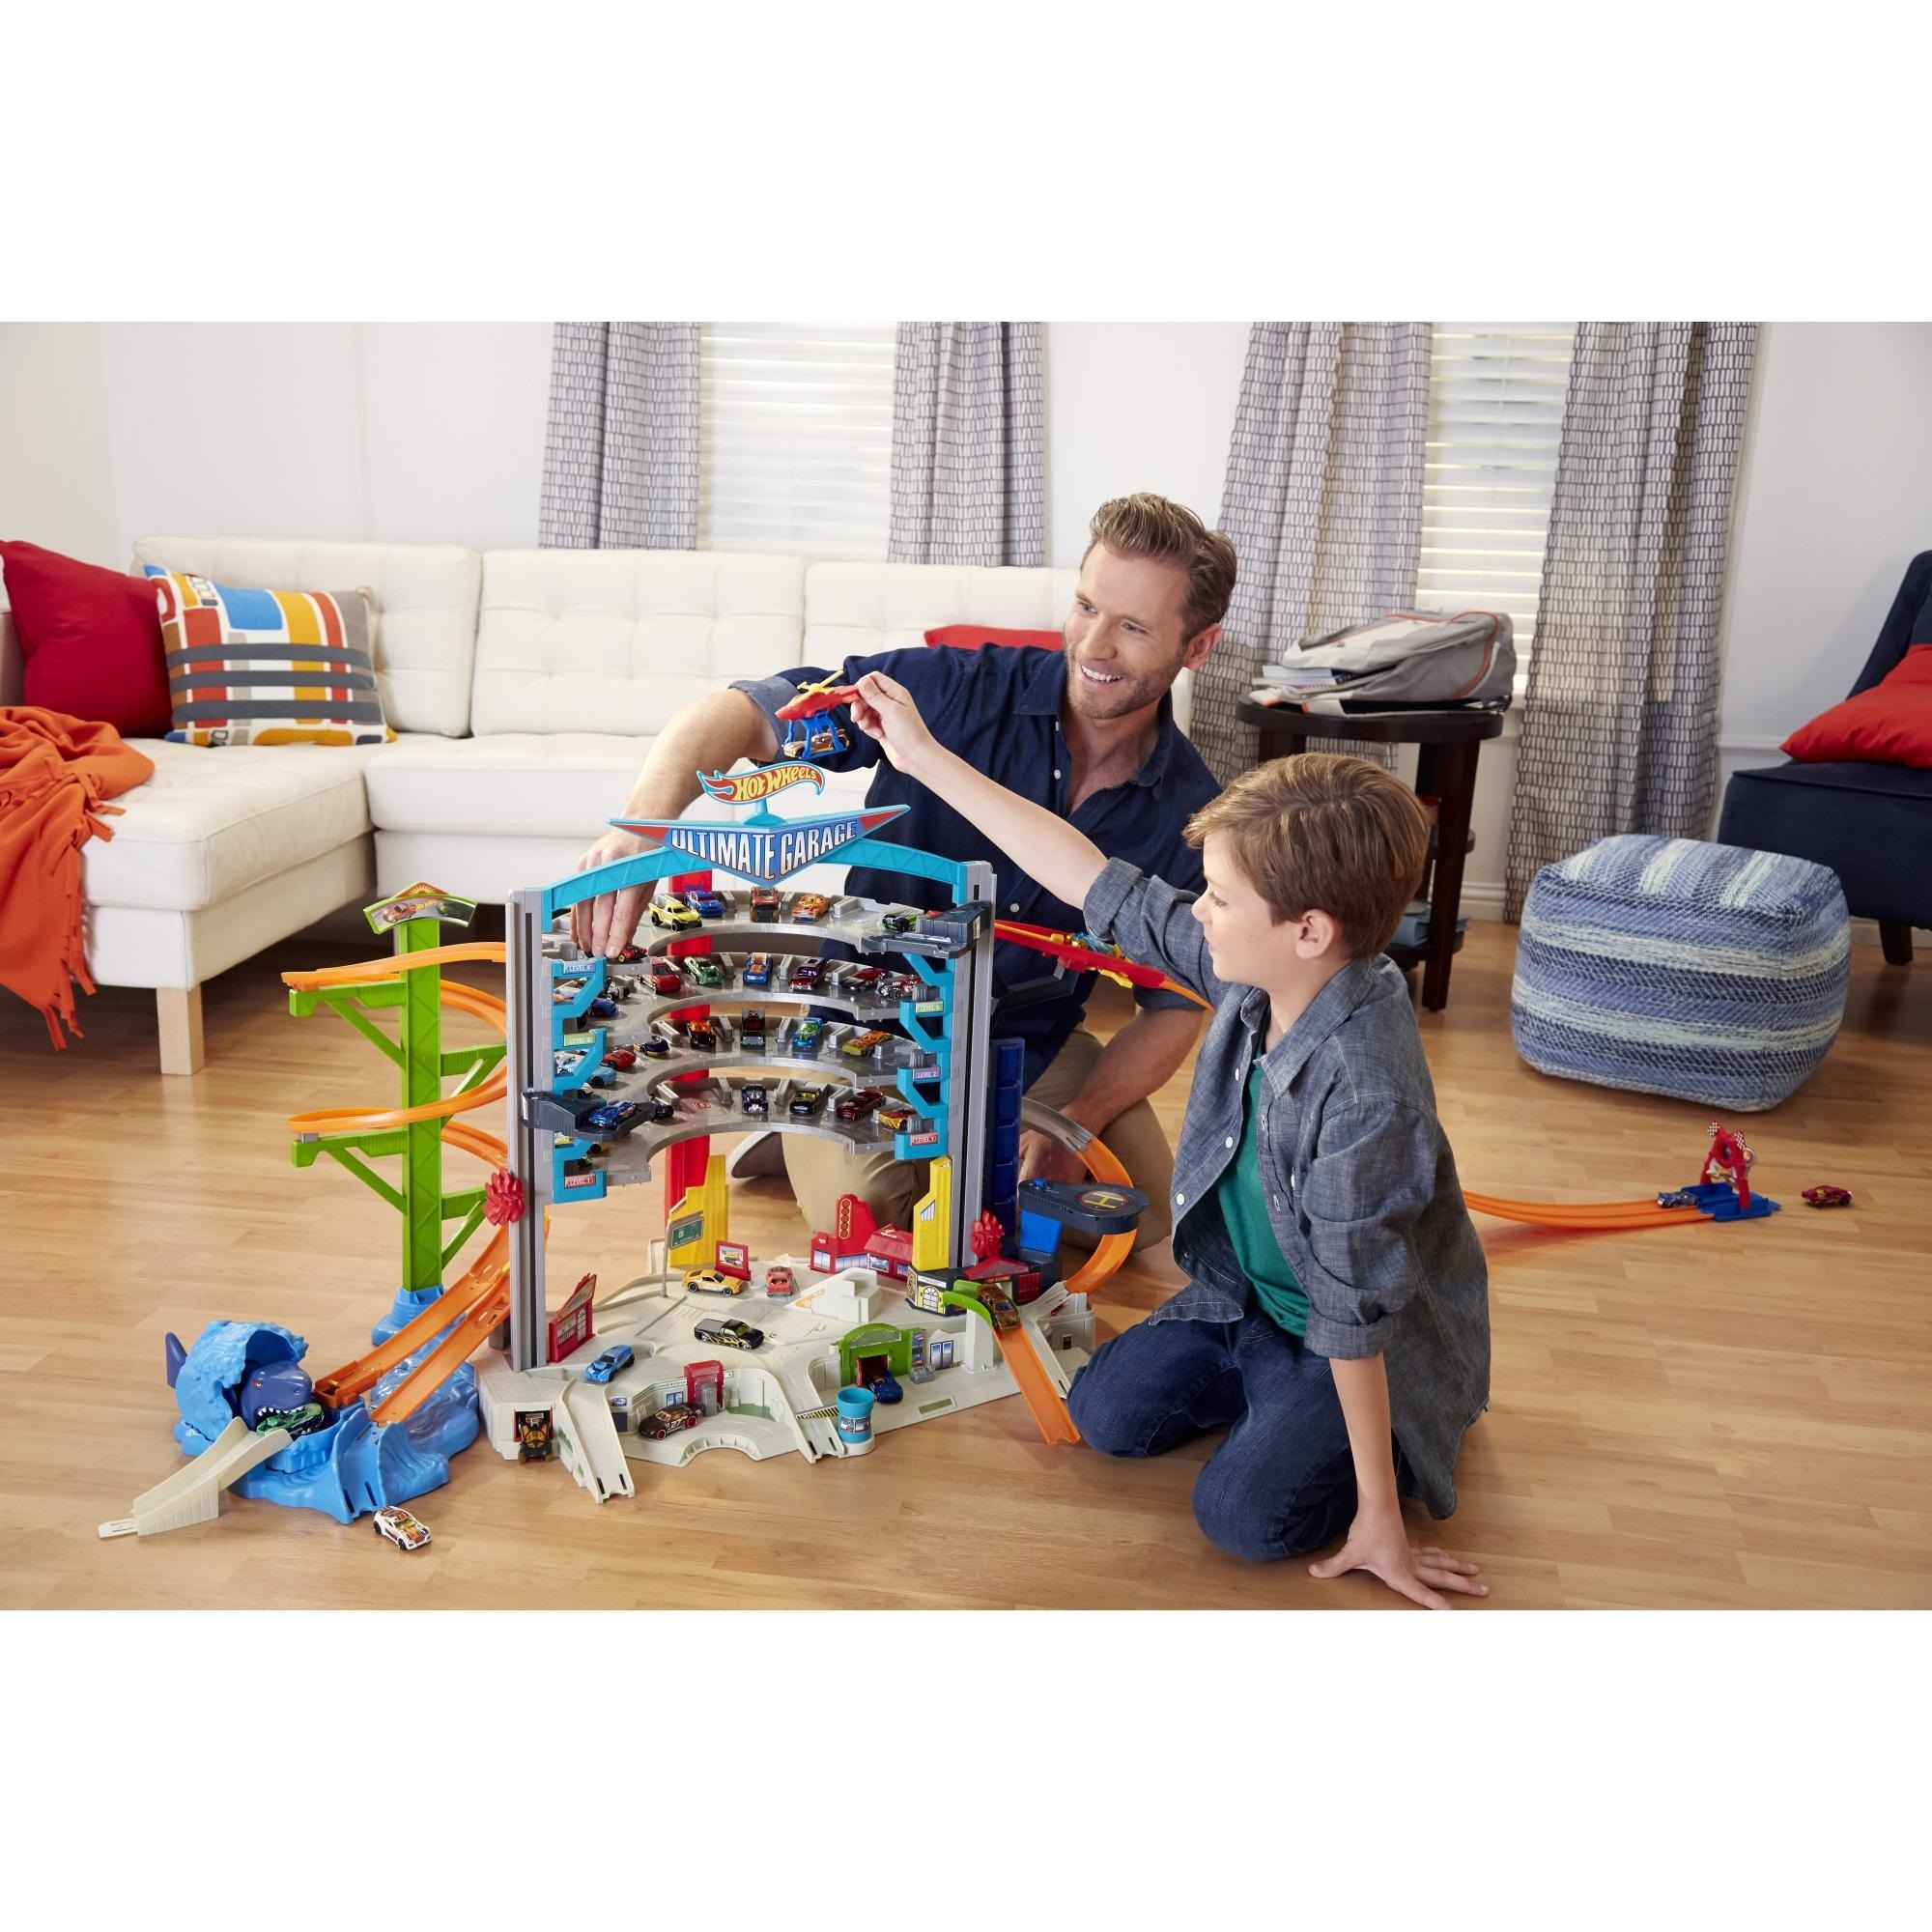 Hot Wheels Ultimate Garage Playset With Car Wash by